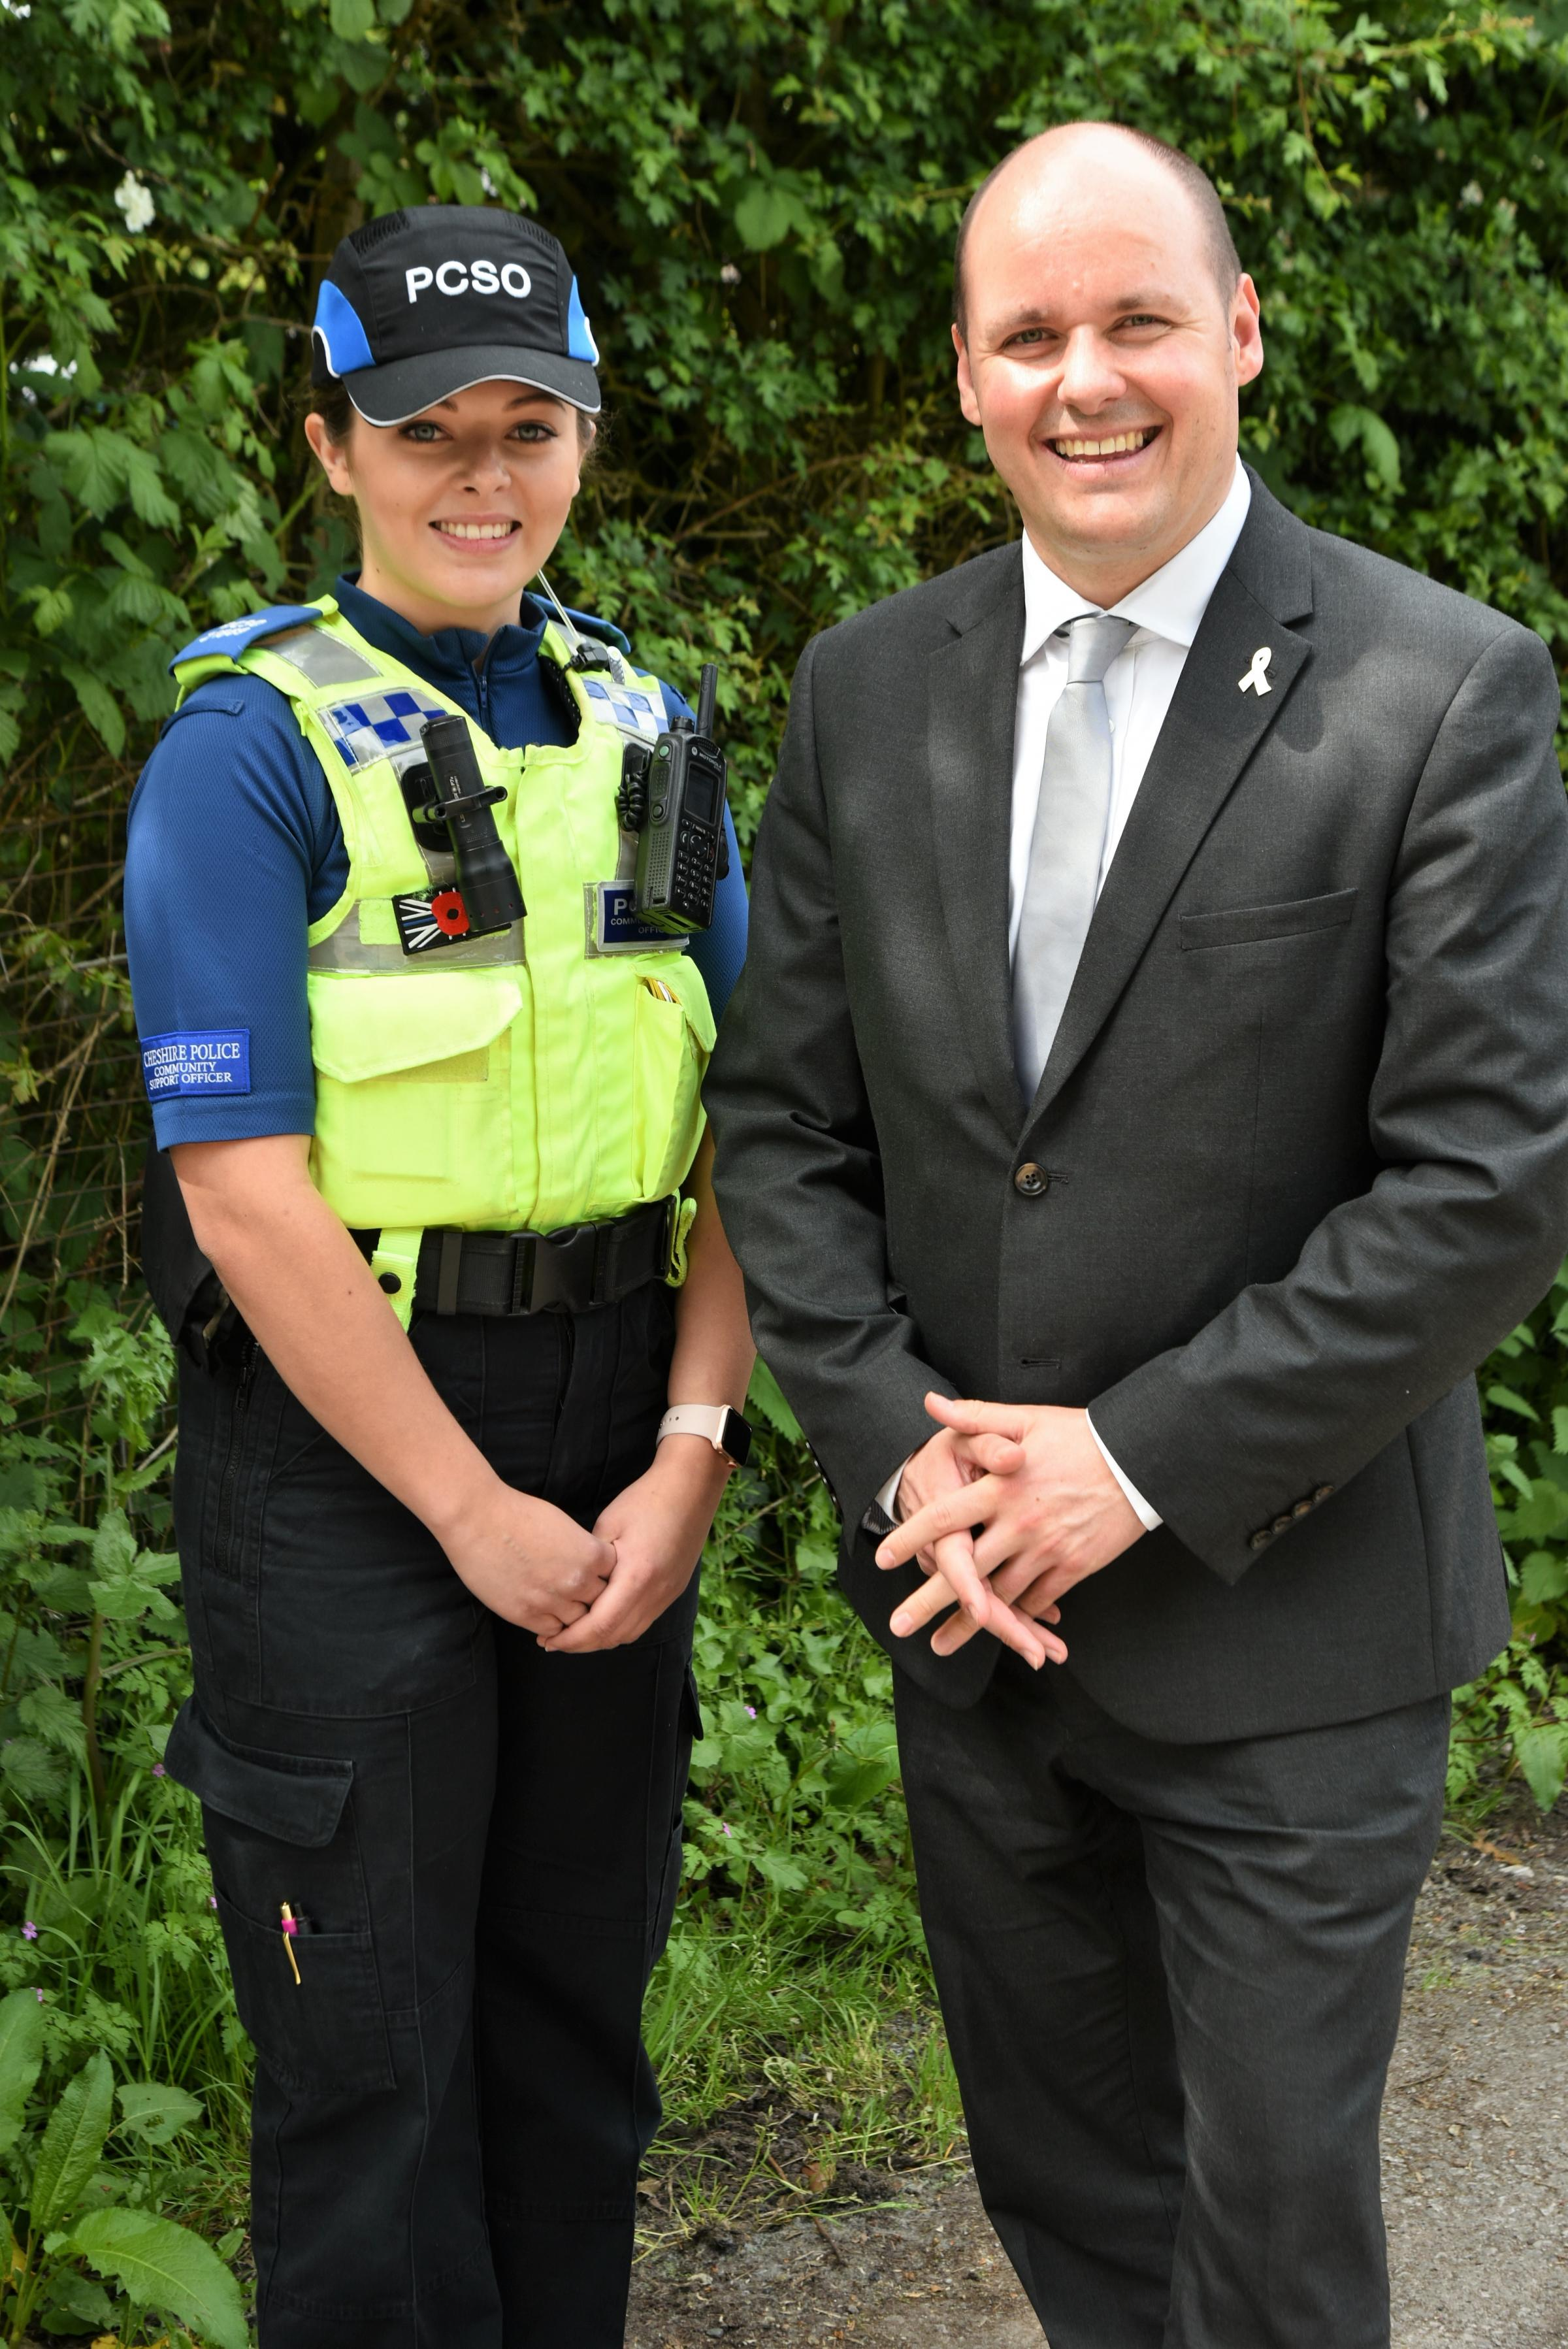 David Keane with PCSO Rebecca Thompson launching the rural crime survey.